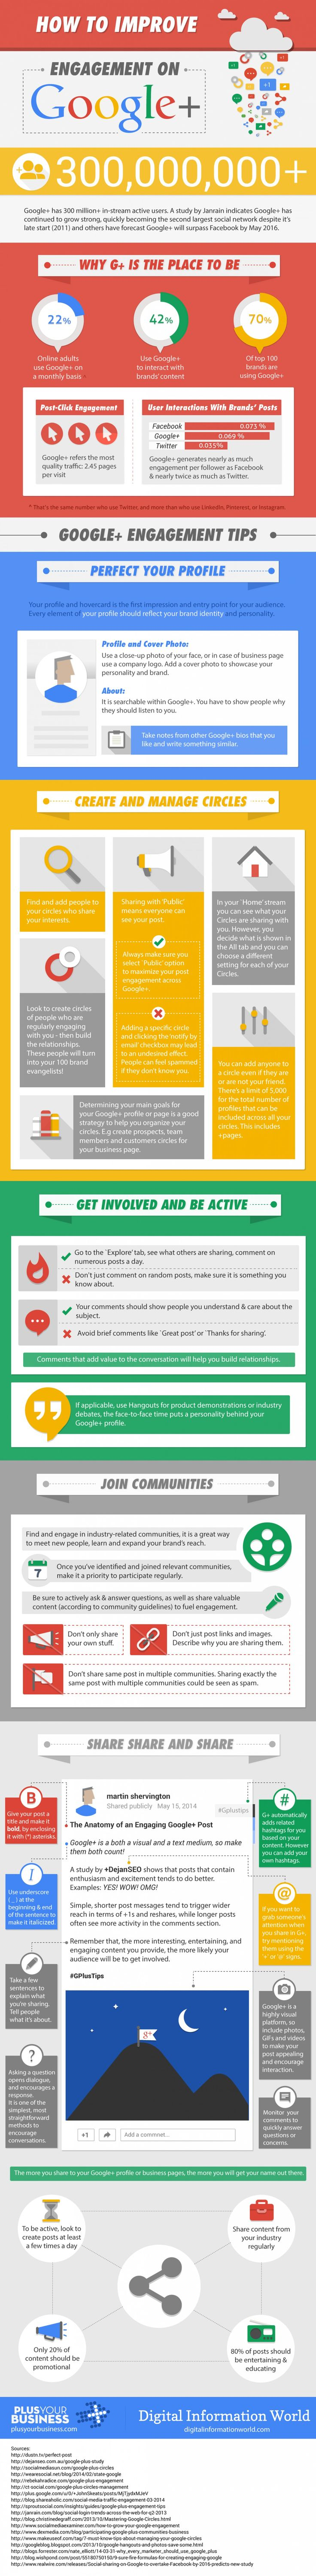 Options to maximise your immersive Social Media engagement on #GooglePlus ...